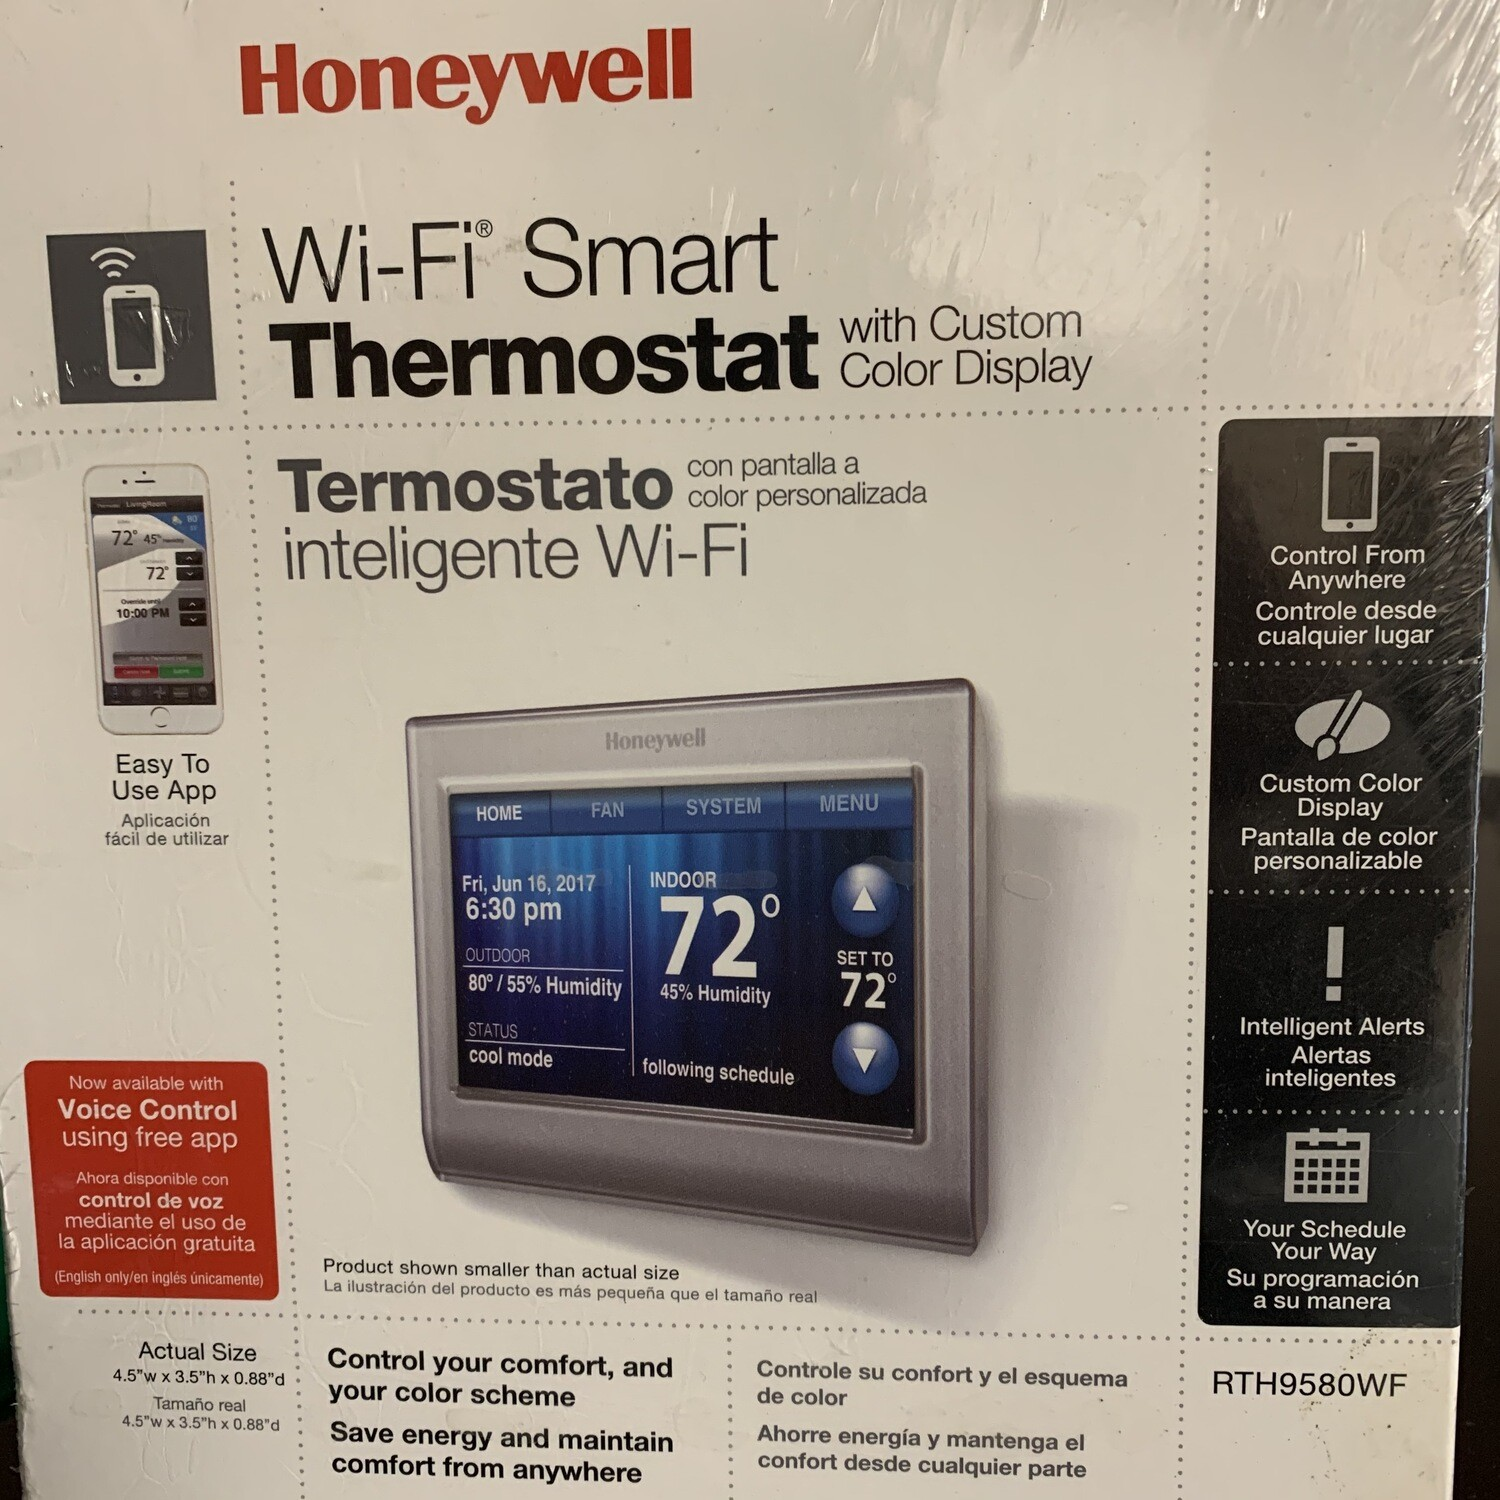 Honeywell Wi-Fi Smart Thermostat With Custom Color Display